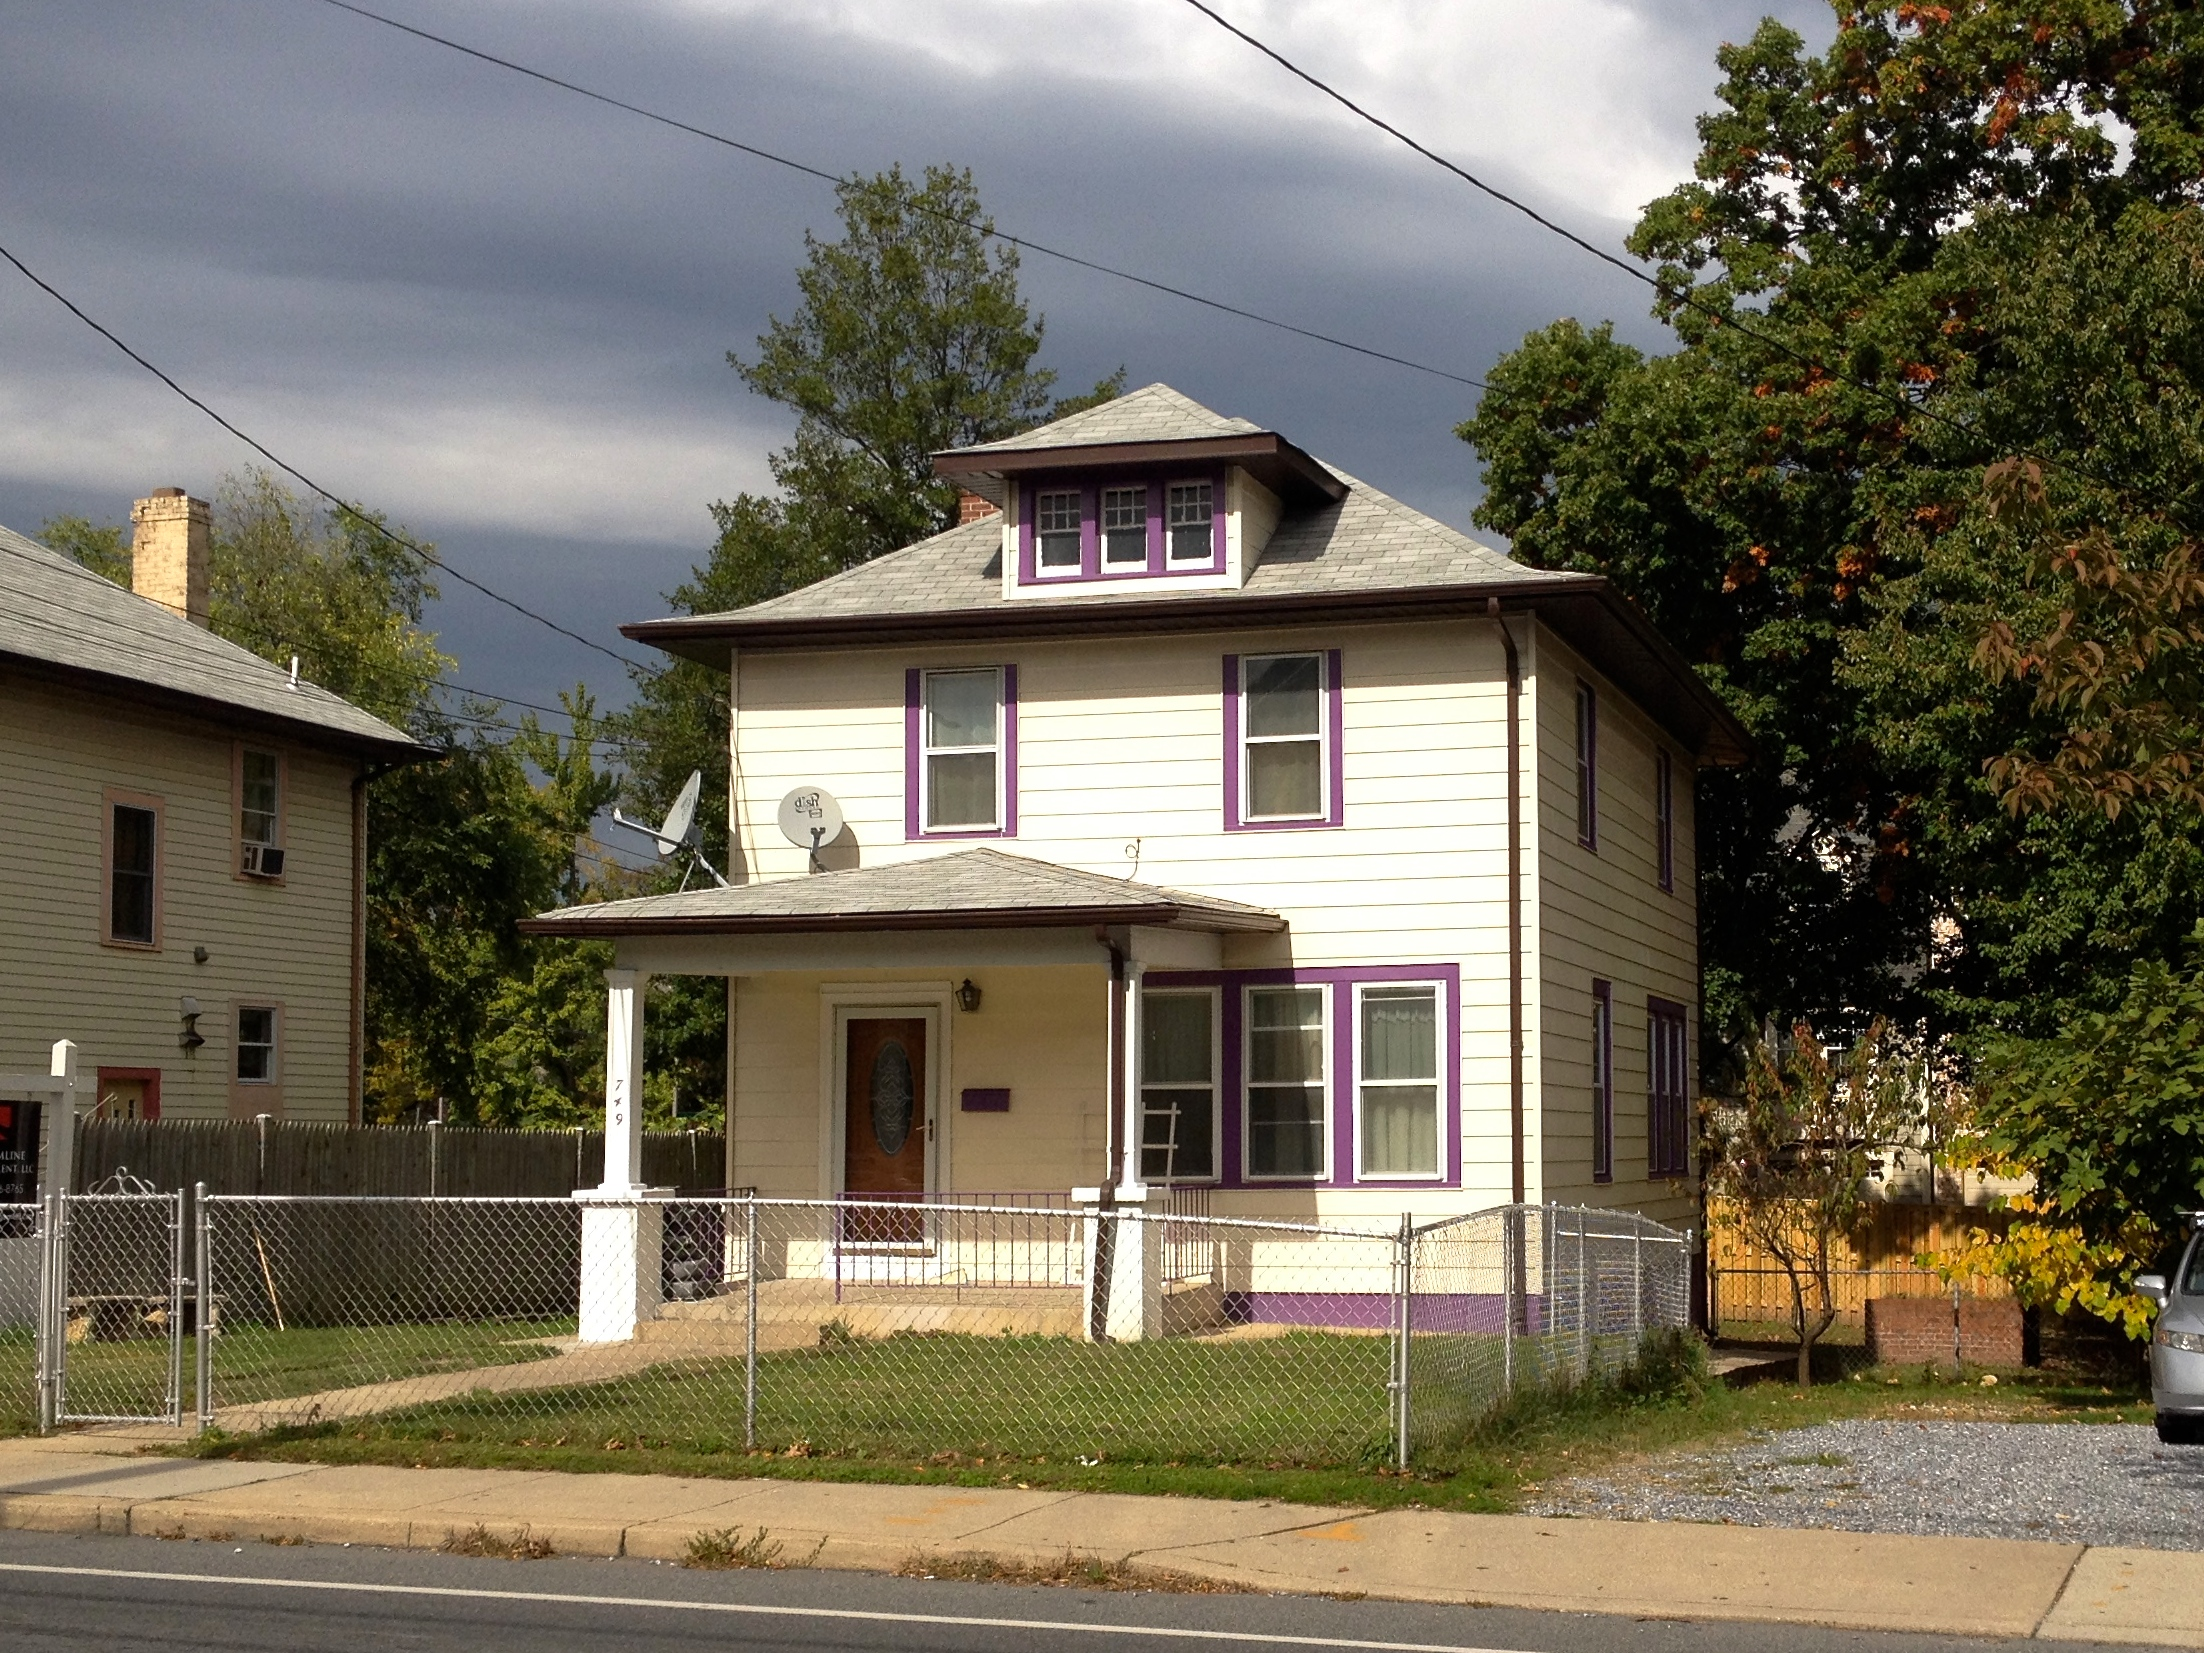 This aladdin needs a magic lamp dc historic kit houses for American foursquare homes for sale